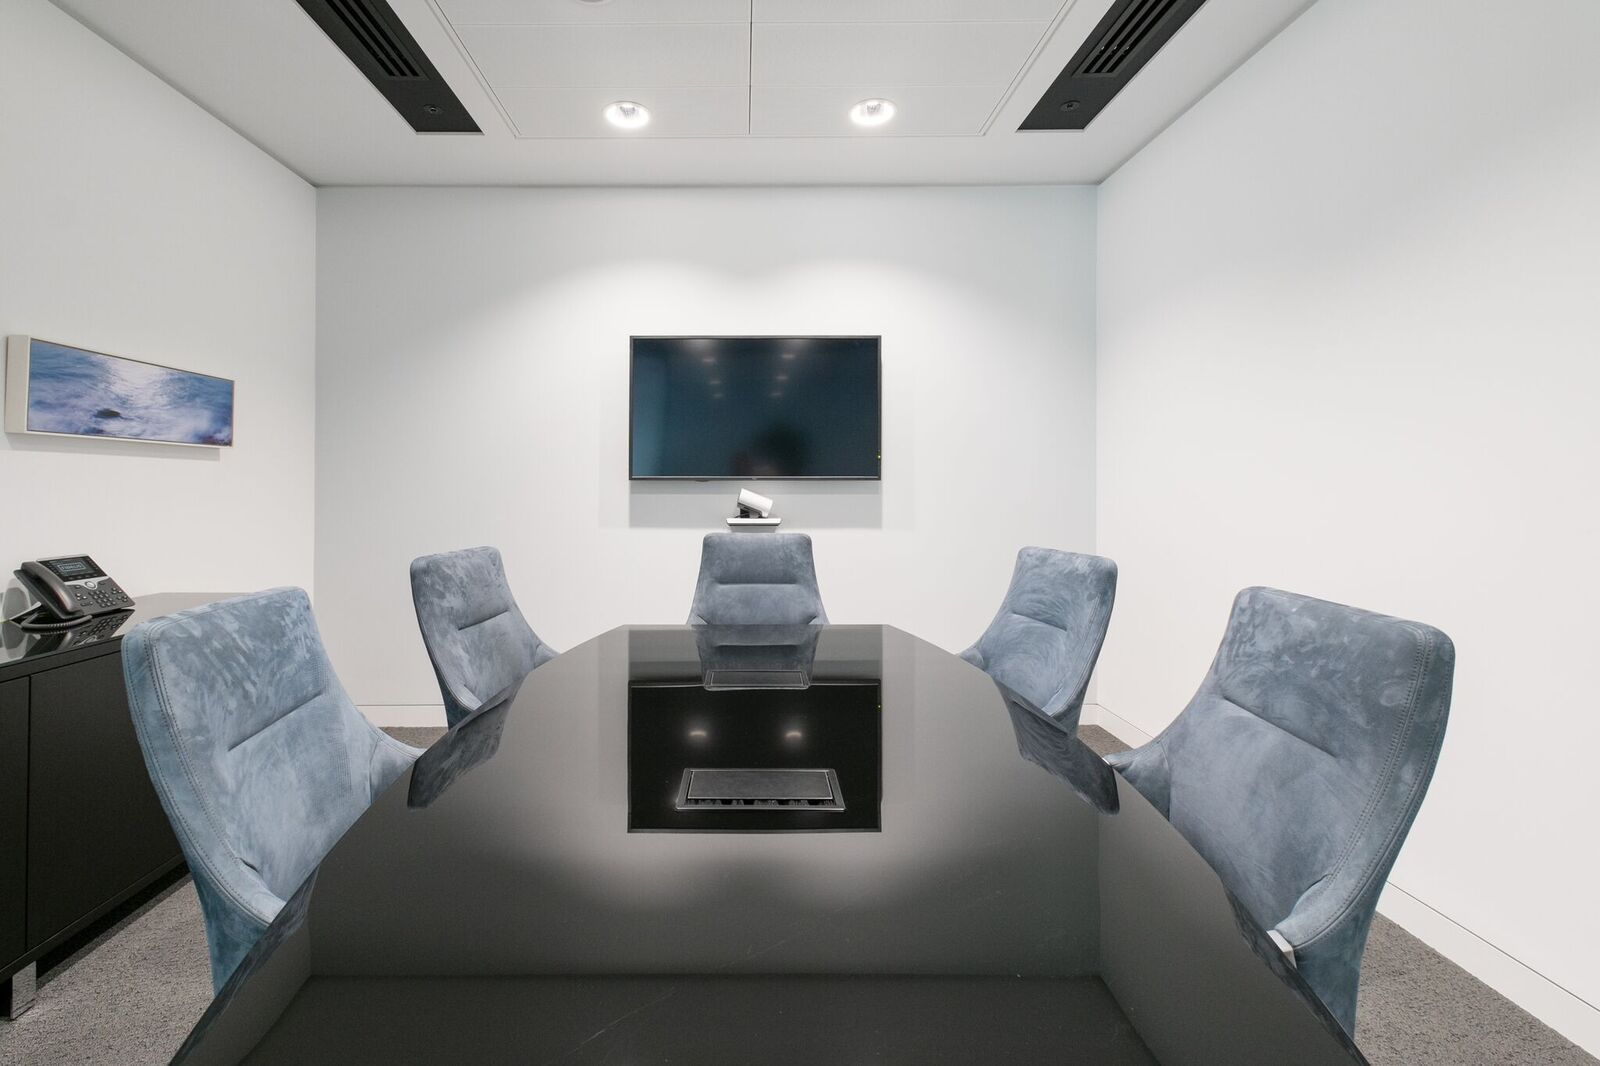 Meeting Room Design By Advanced Interior Solutions, London.